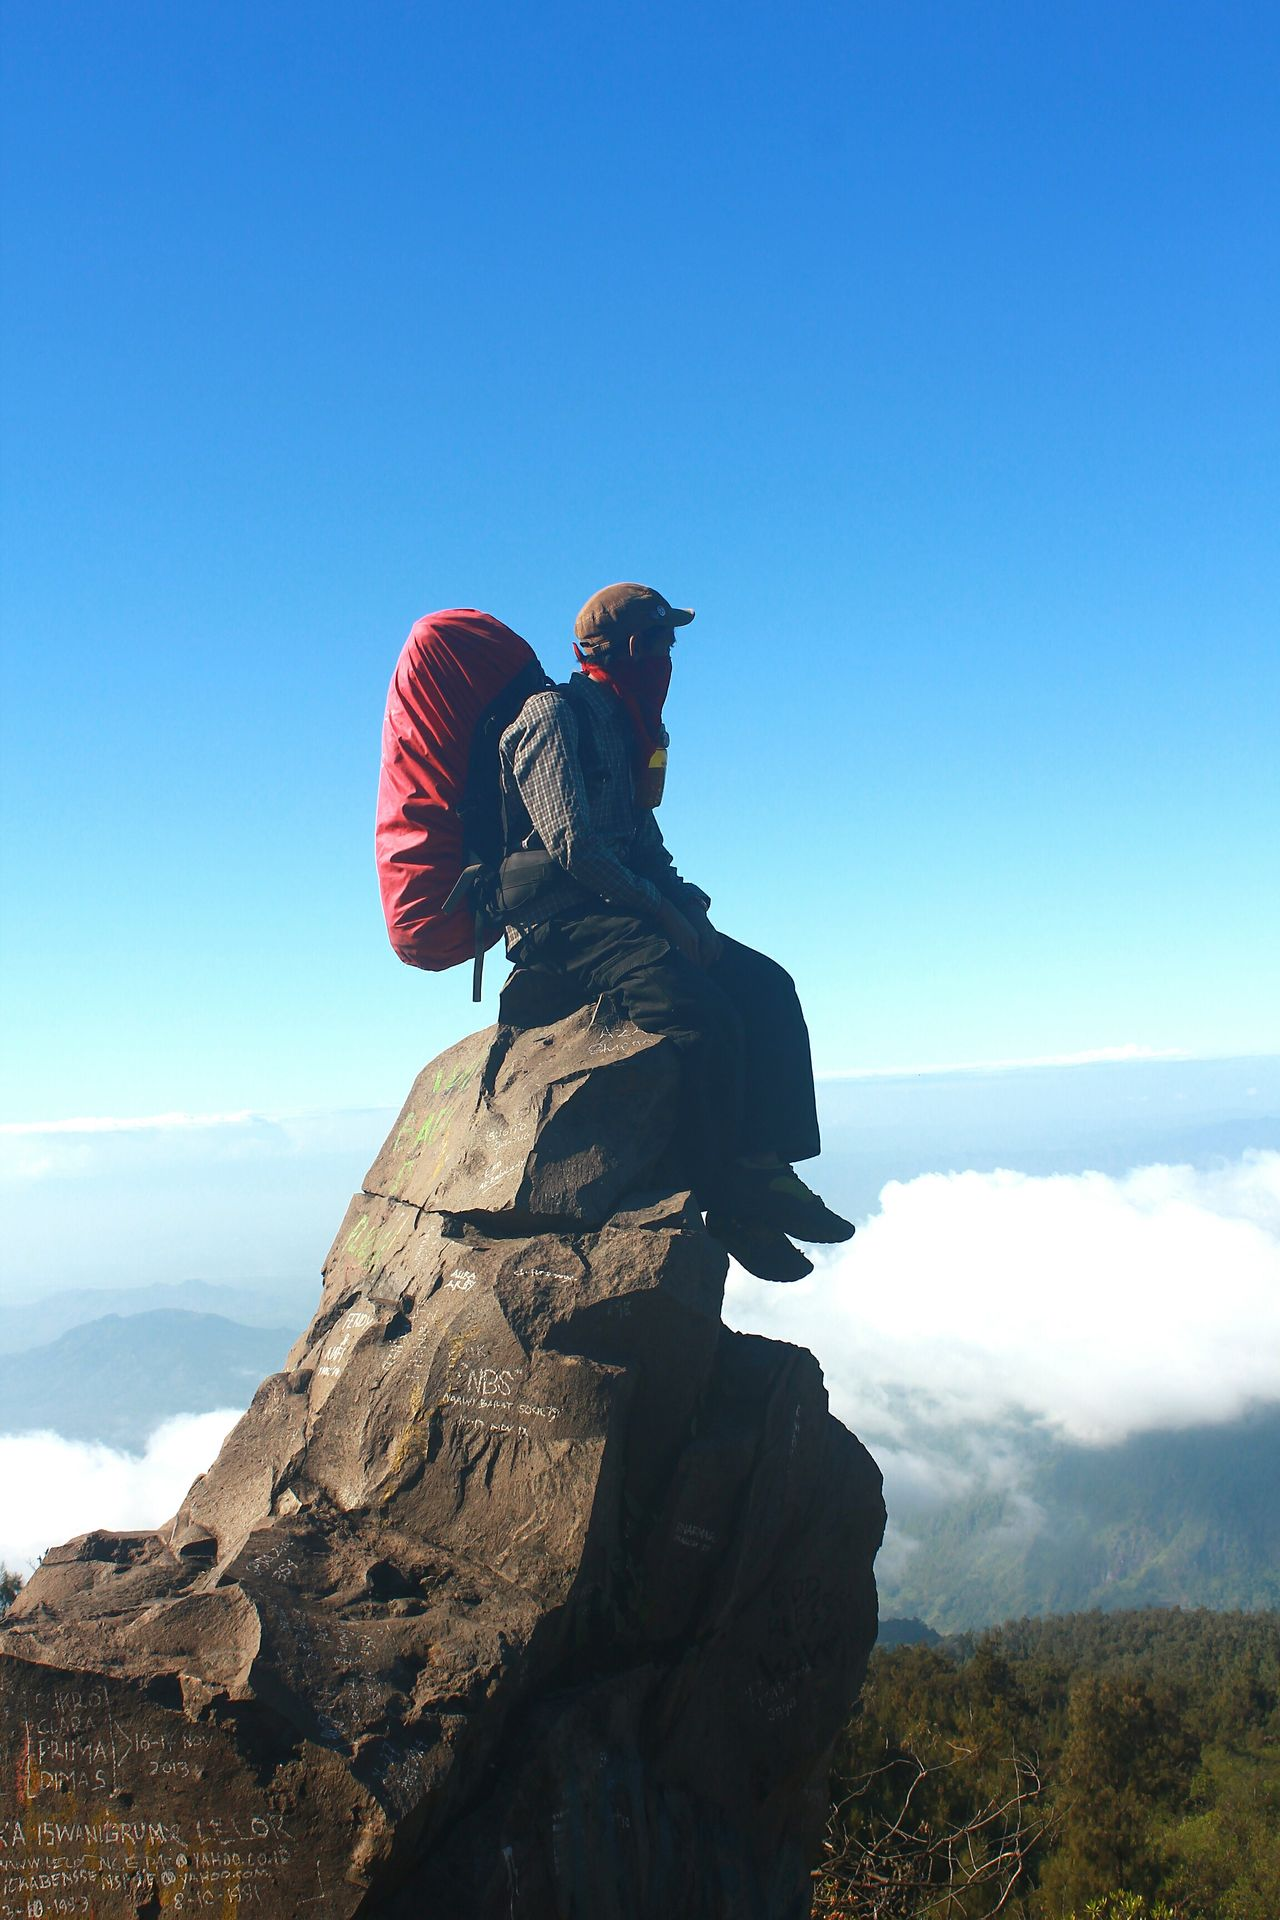 Sit on the rock and enjoyed the moment for awhile when hike in the top of mount lawu in java Sky One Person Human Body Part People Outdoors Day Hiking Adventure Wanderlust Java Sitting Alone Sitting Enjoying The View Enjoying Nature Enjoying Life Rock Mountain Range Mountain Mountain View